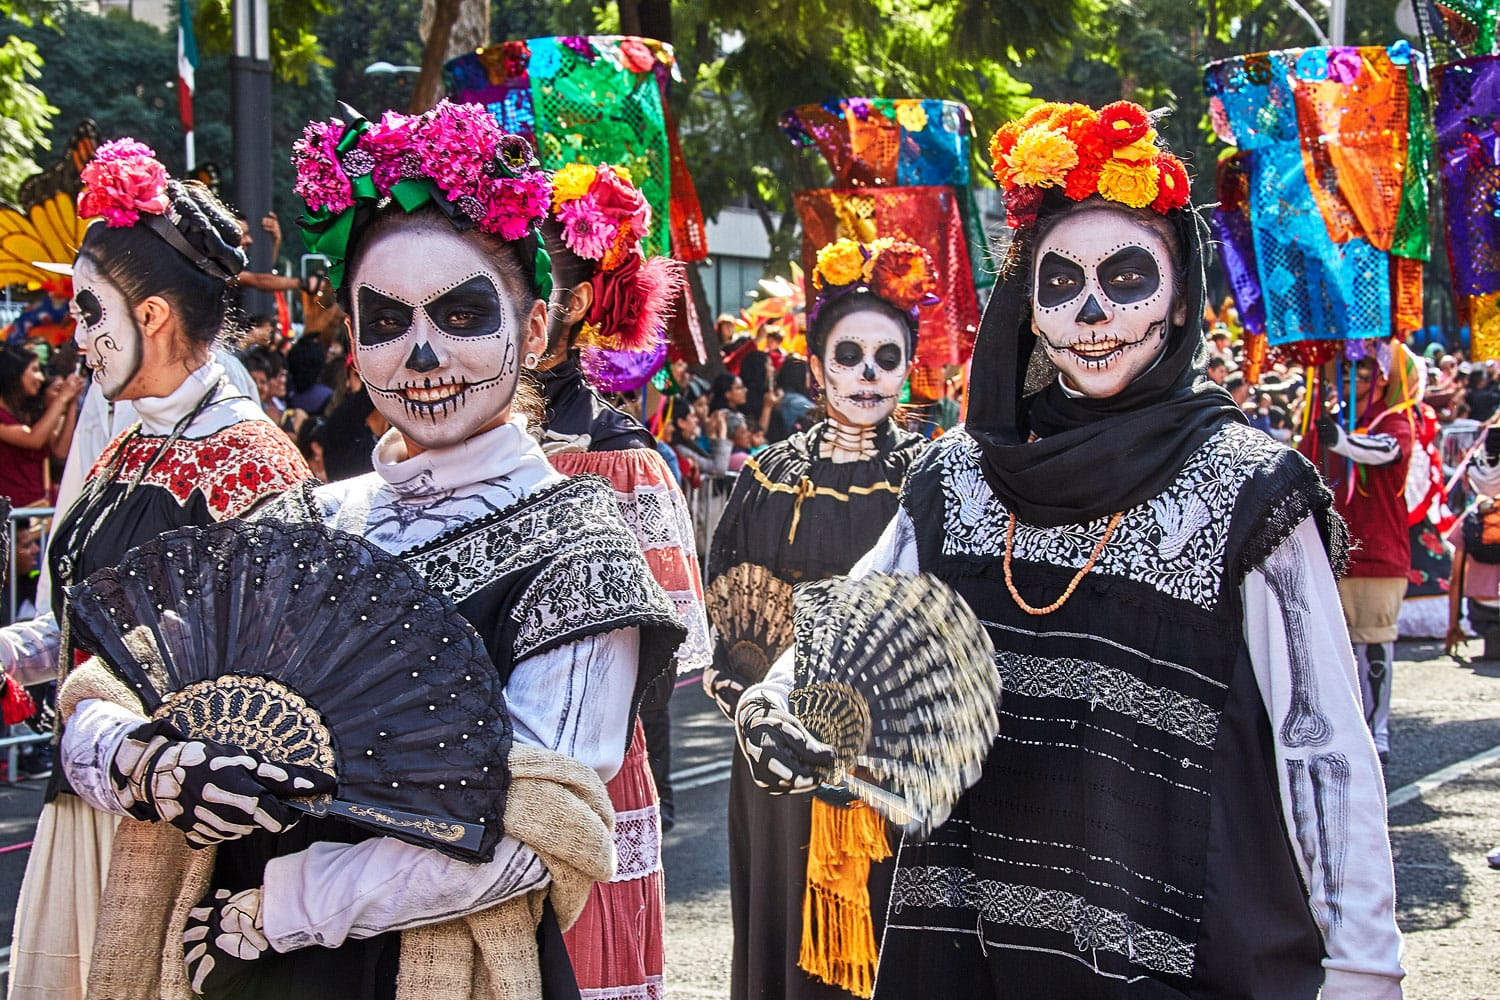 Day of the dead parade in Oaxaca, Mexico